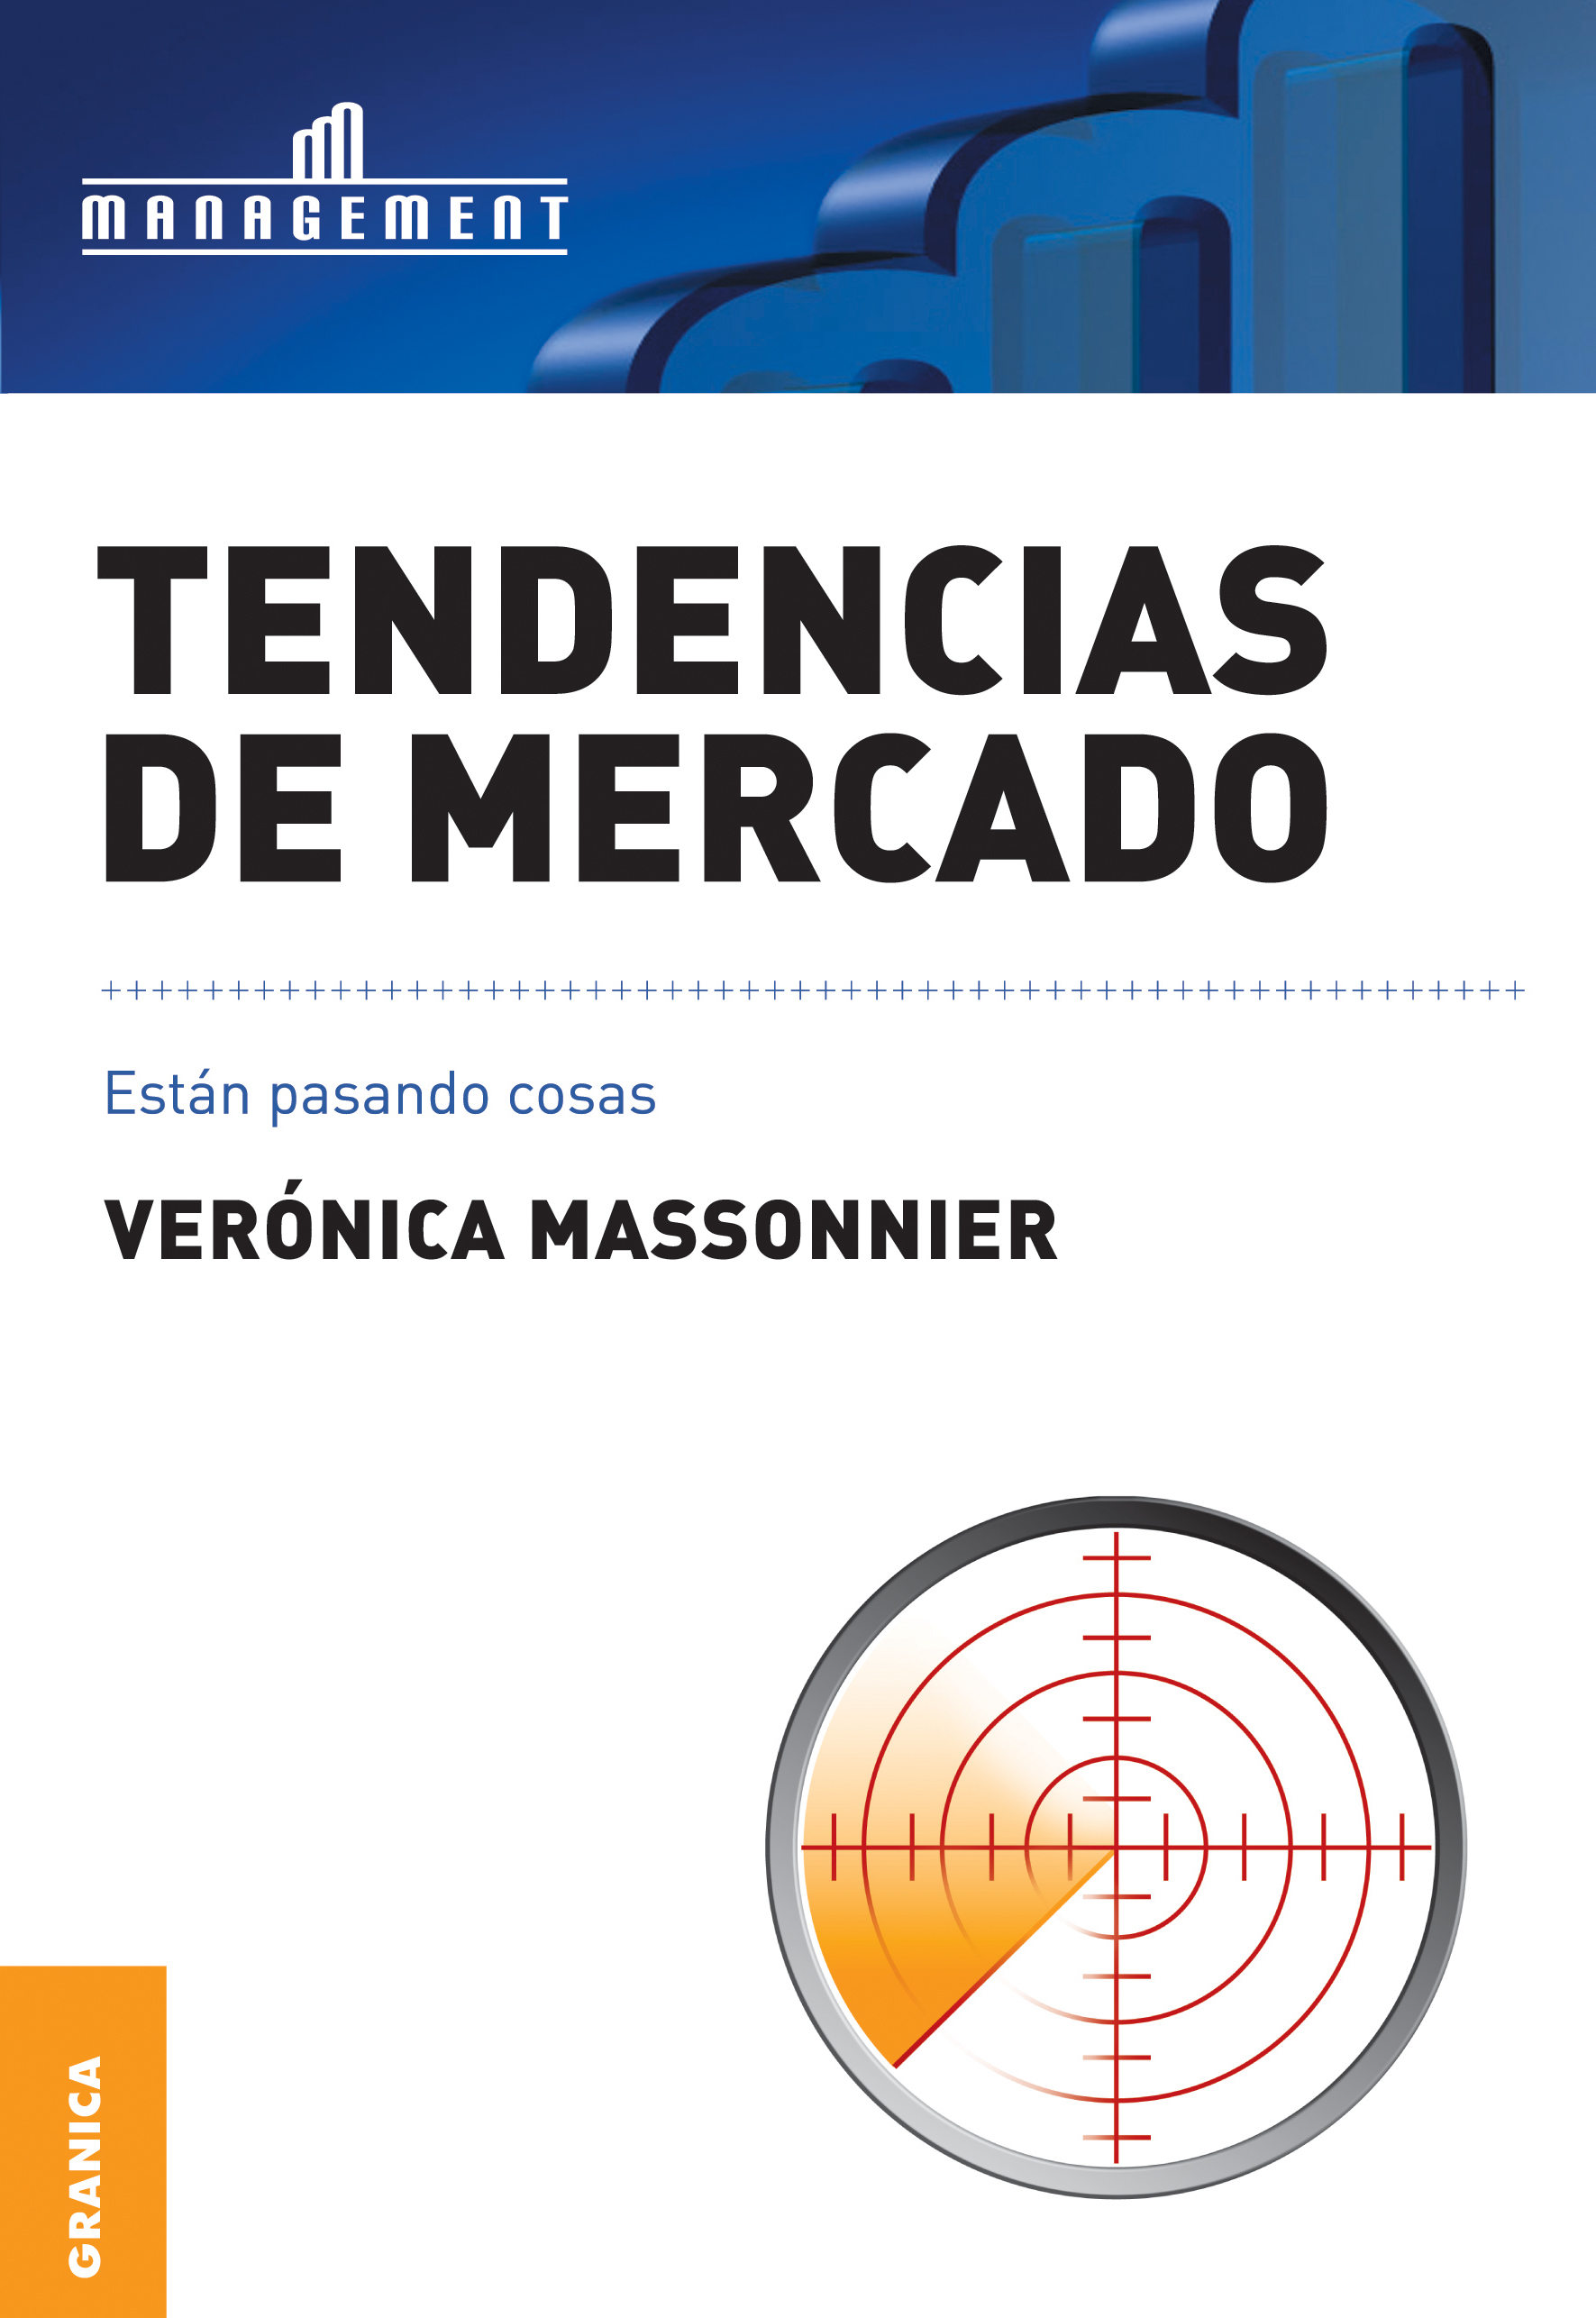 Tendencias de mercado